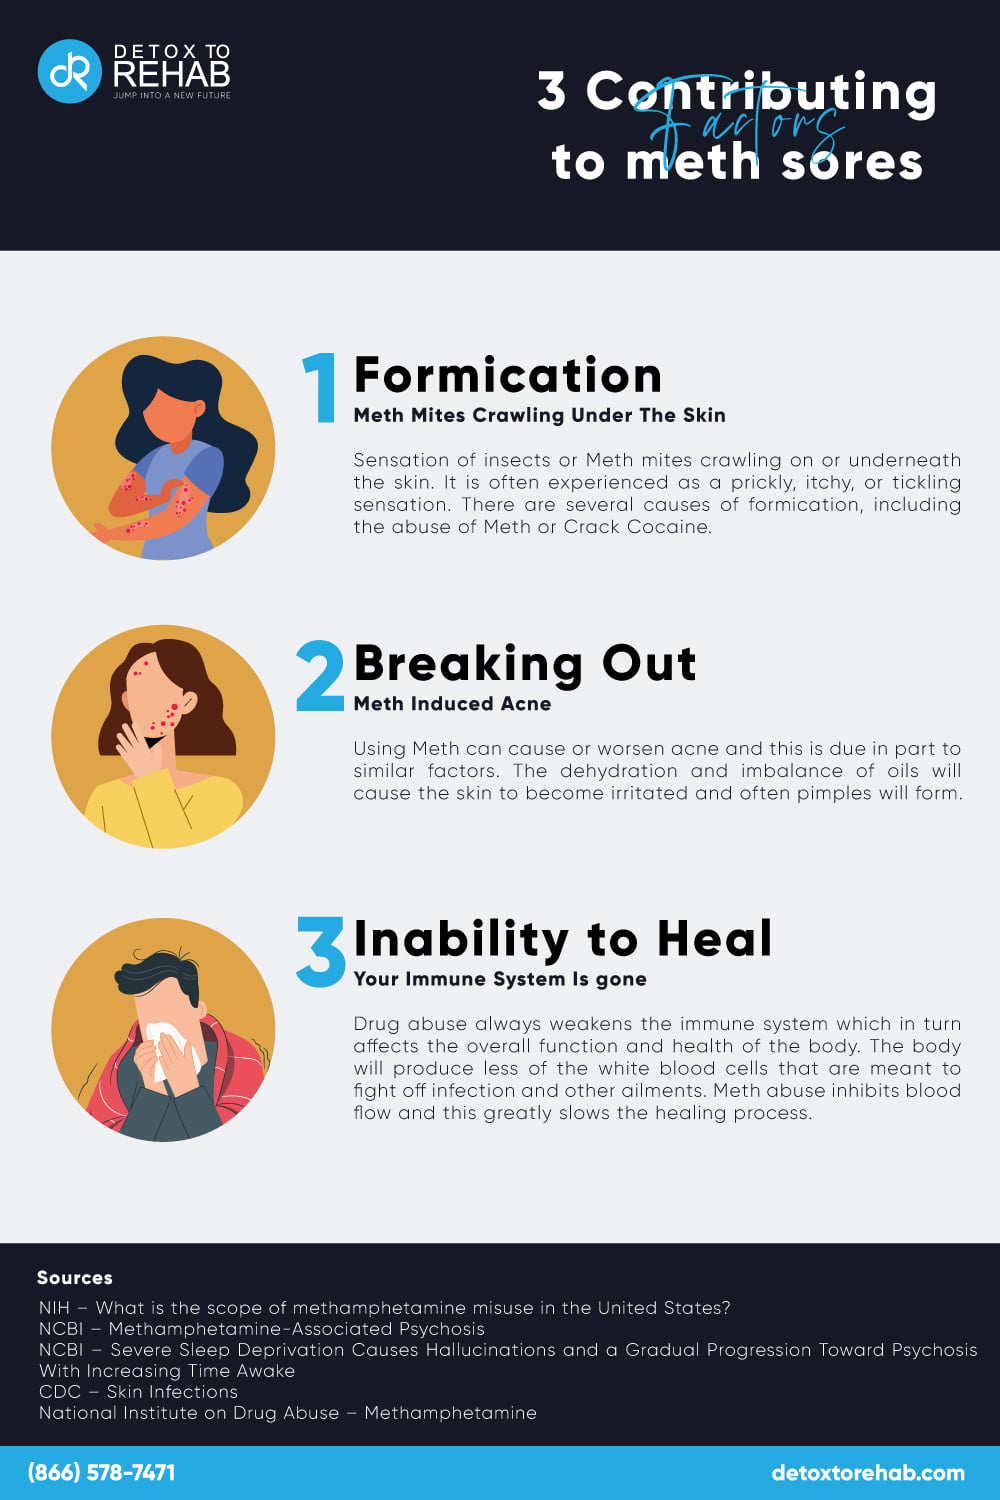 Contributing Factors to Meth Sores infographic